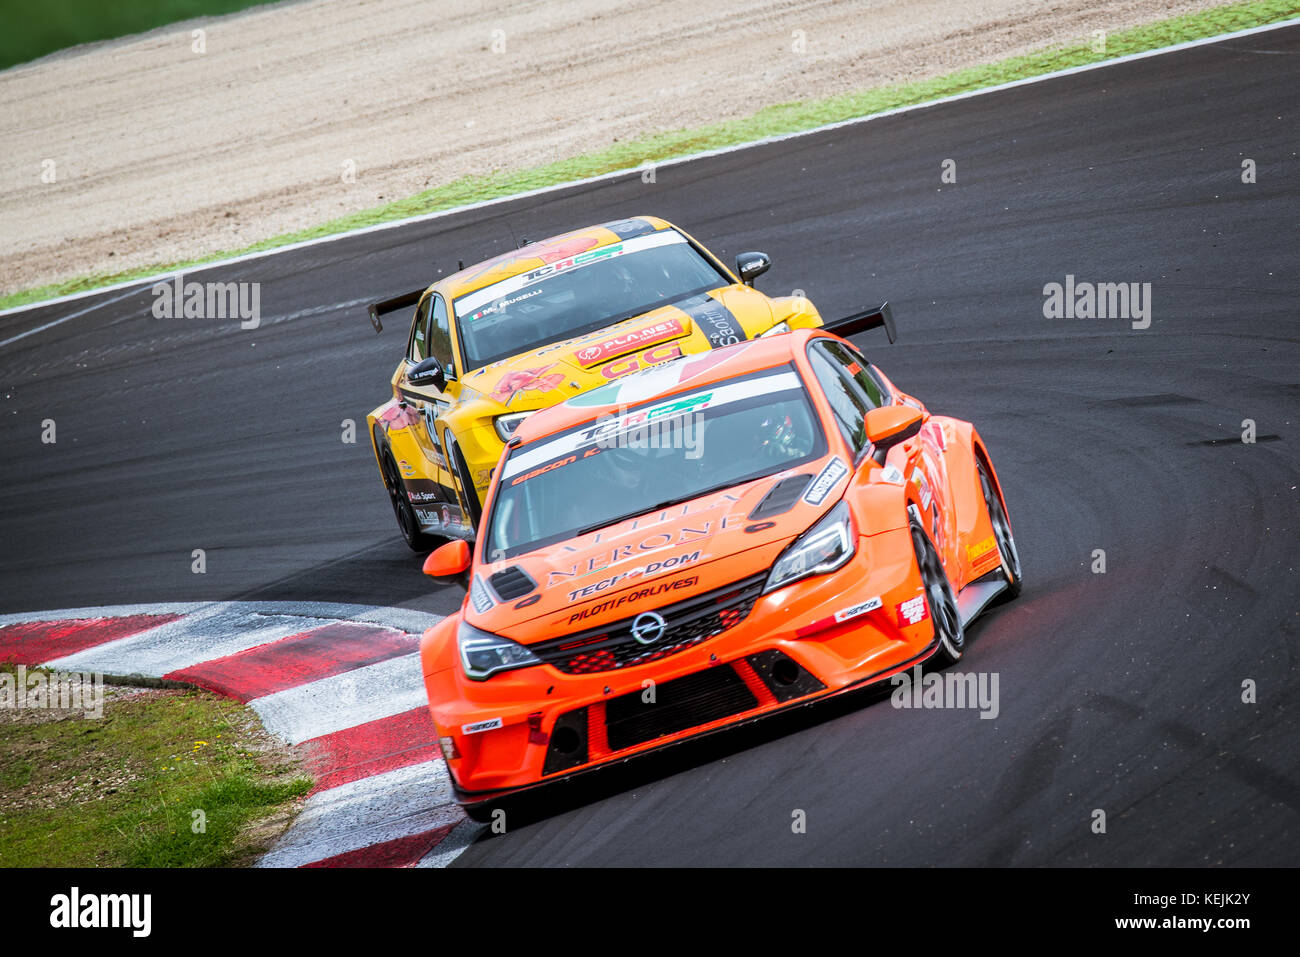 Vallelunga, Italy september 24 2017  Touring Audi rs3 and Opel Astra